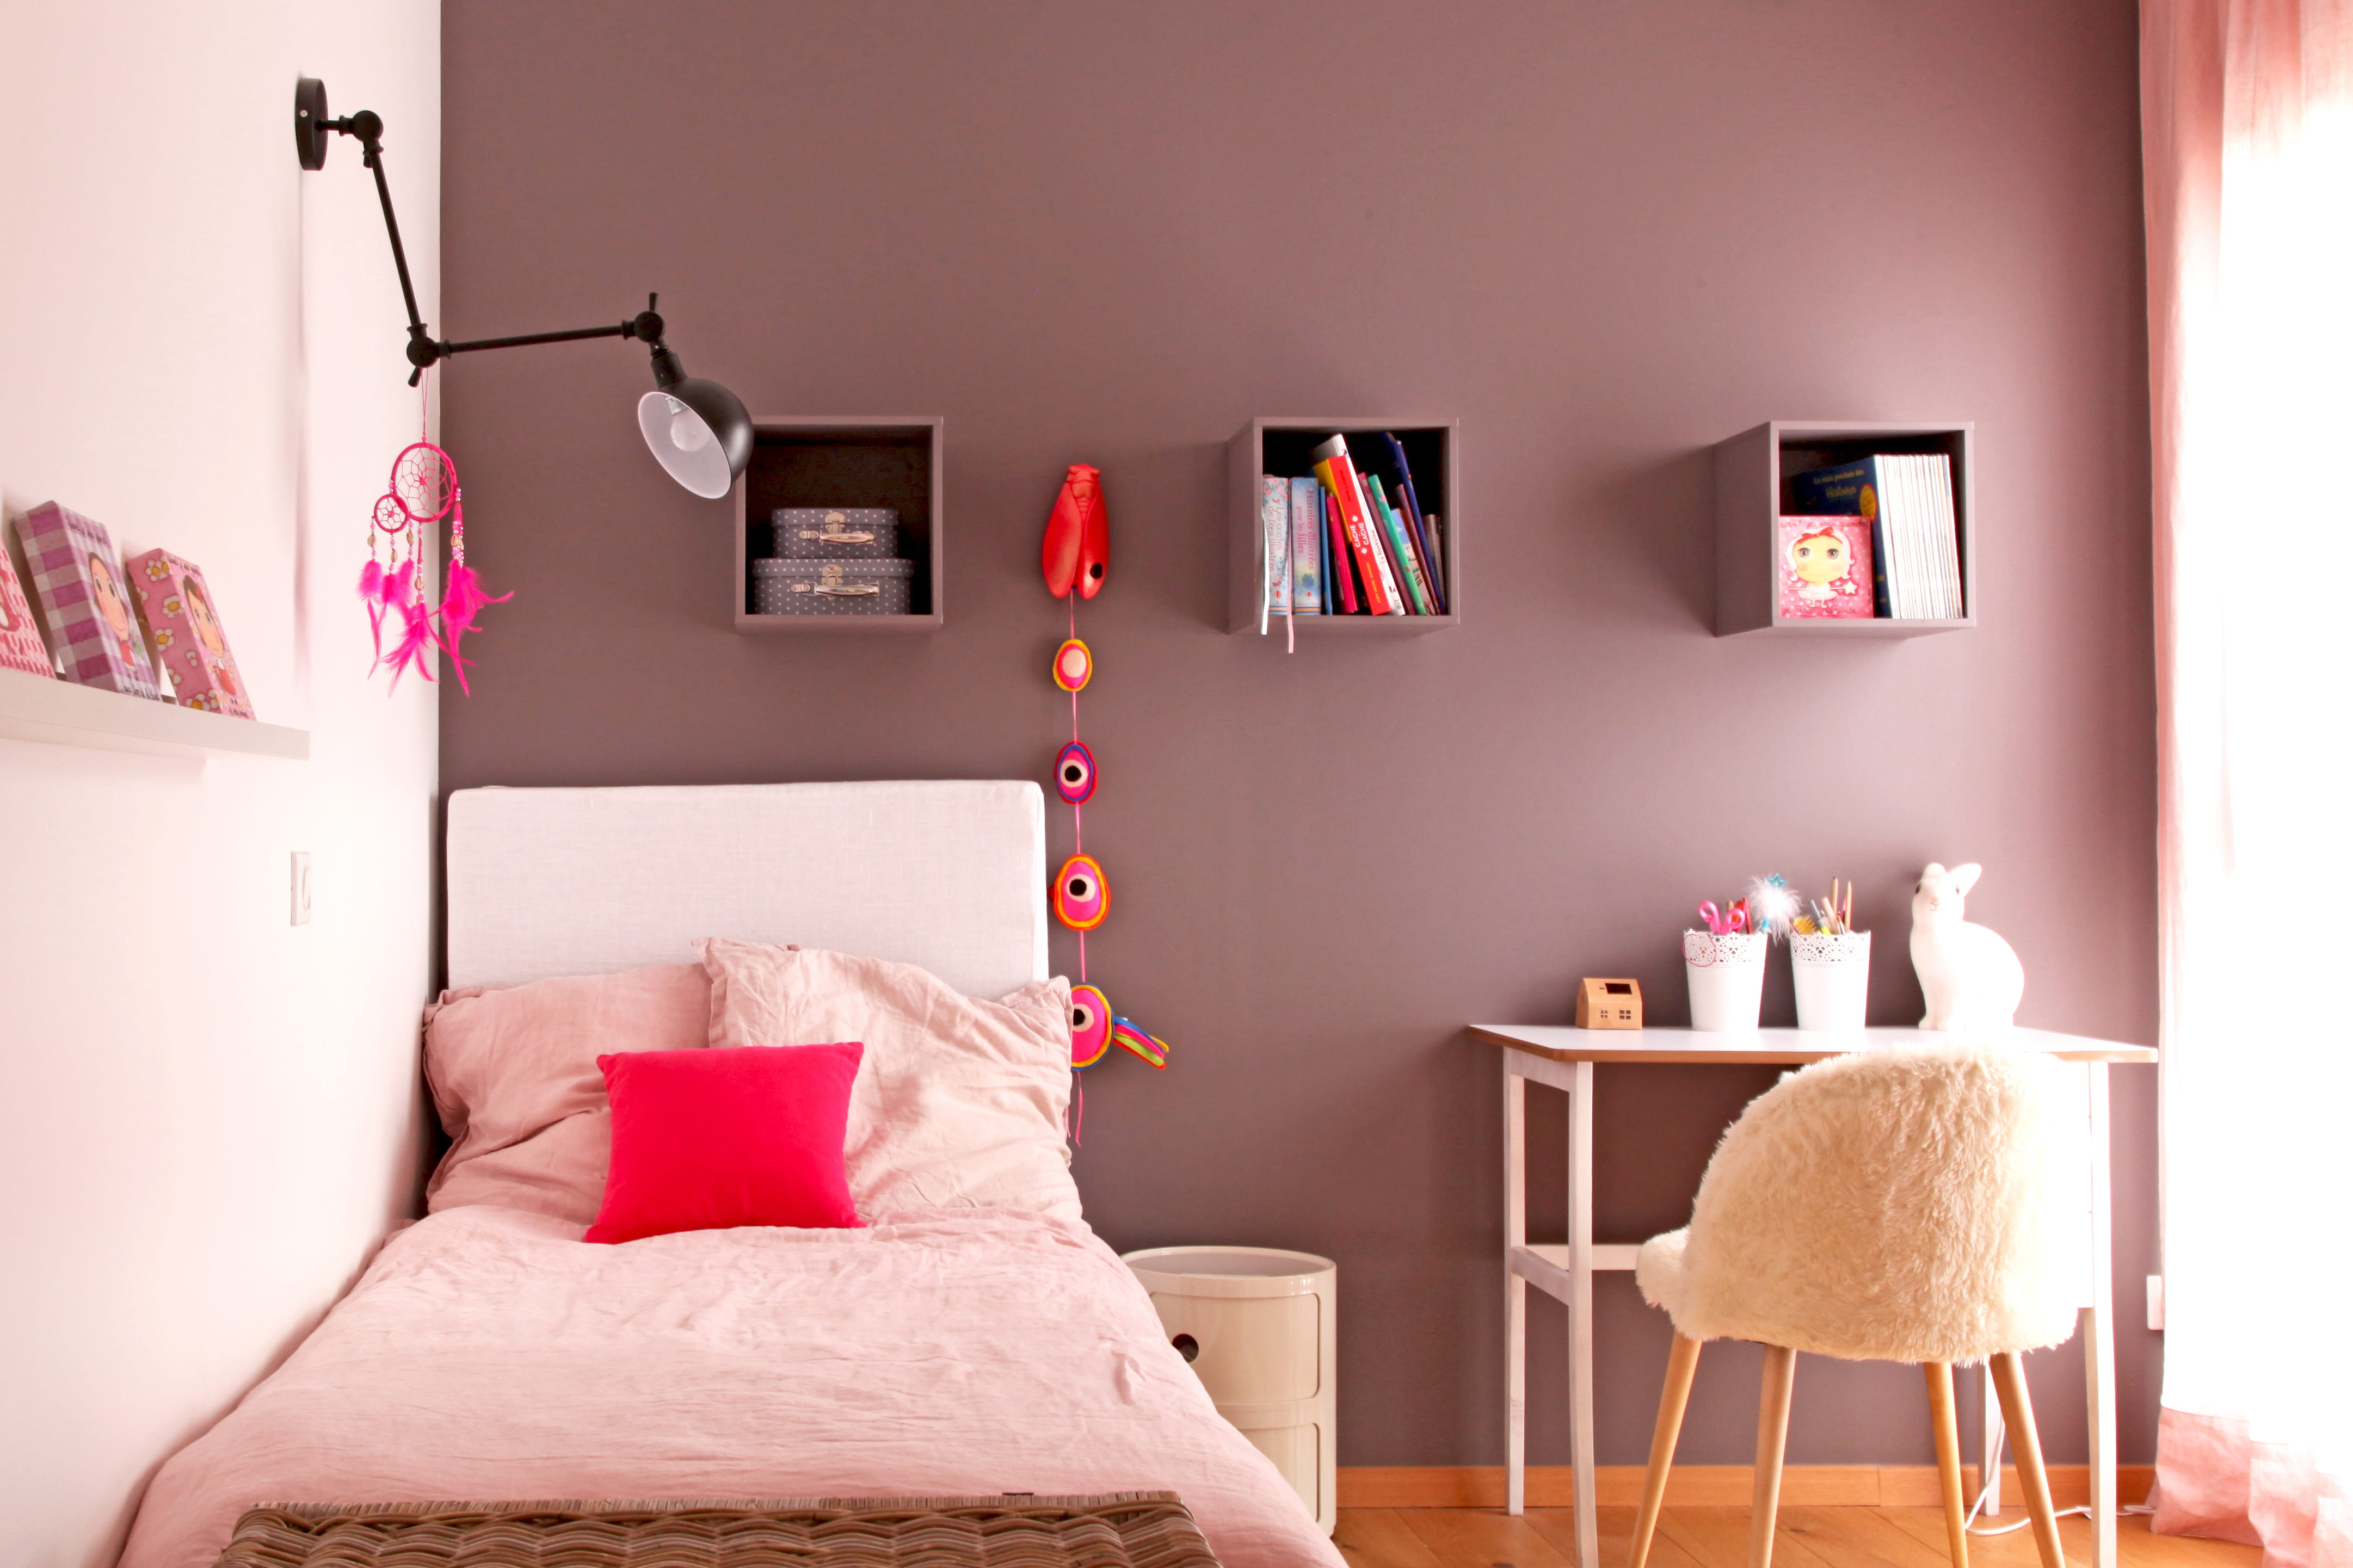 Emejing idee couleur chambre a coucher images amazing - Idee de couleur pour une chambre ...